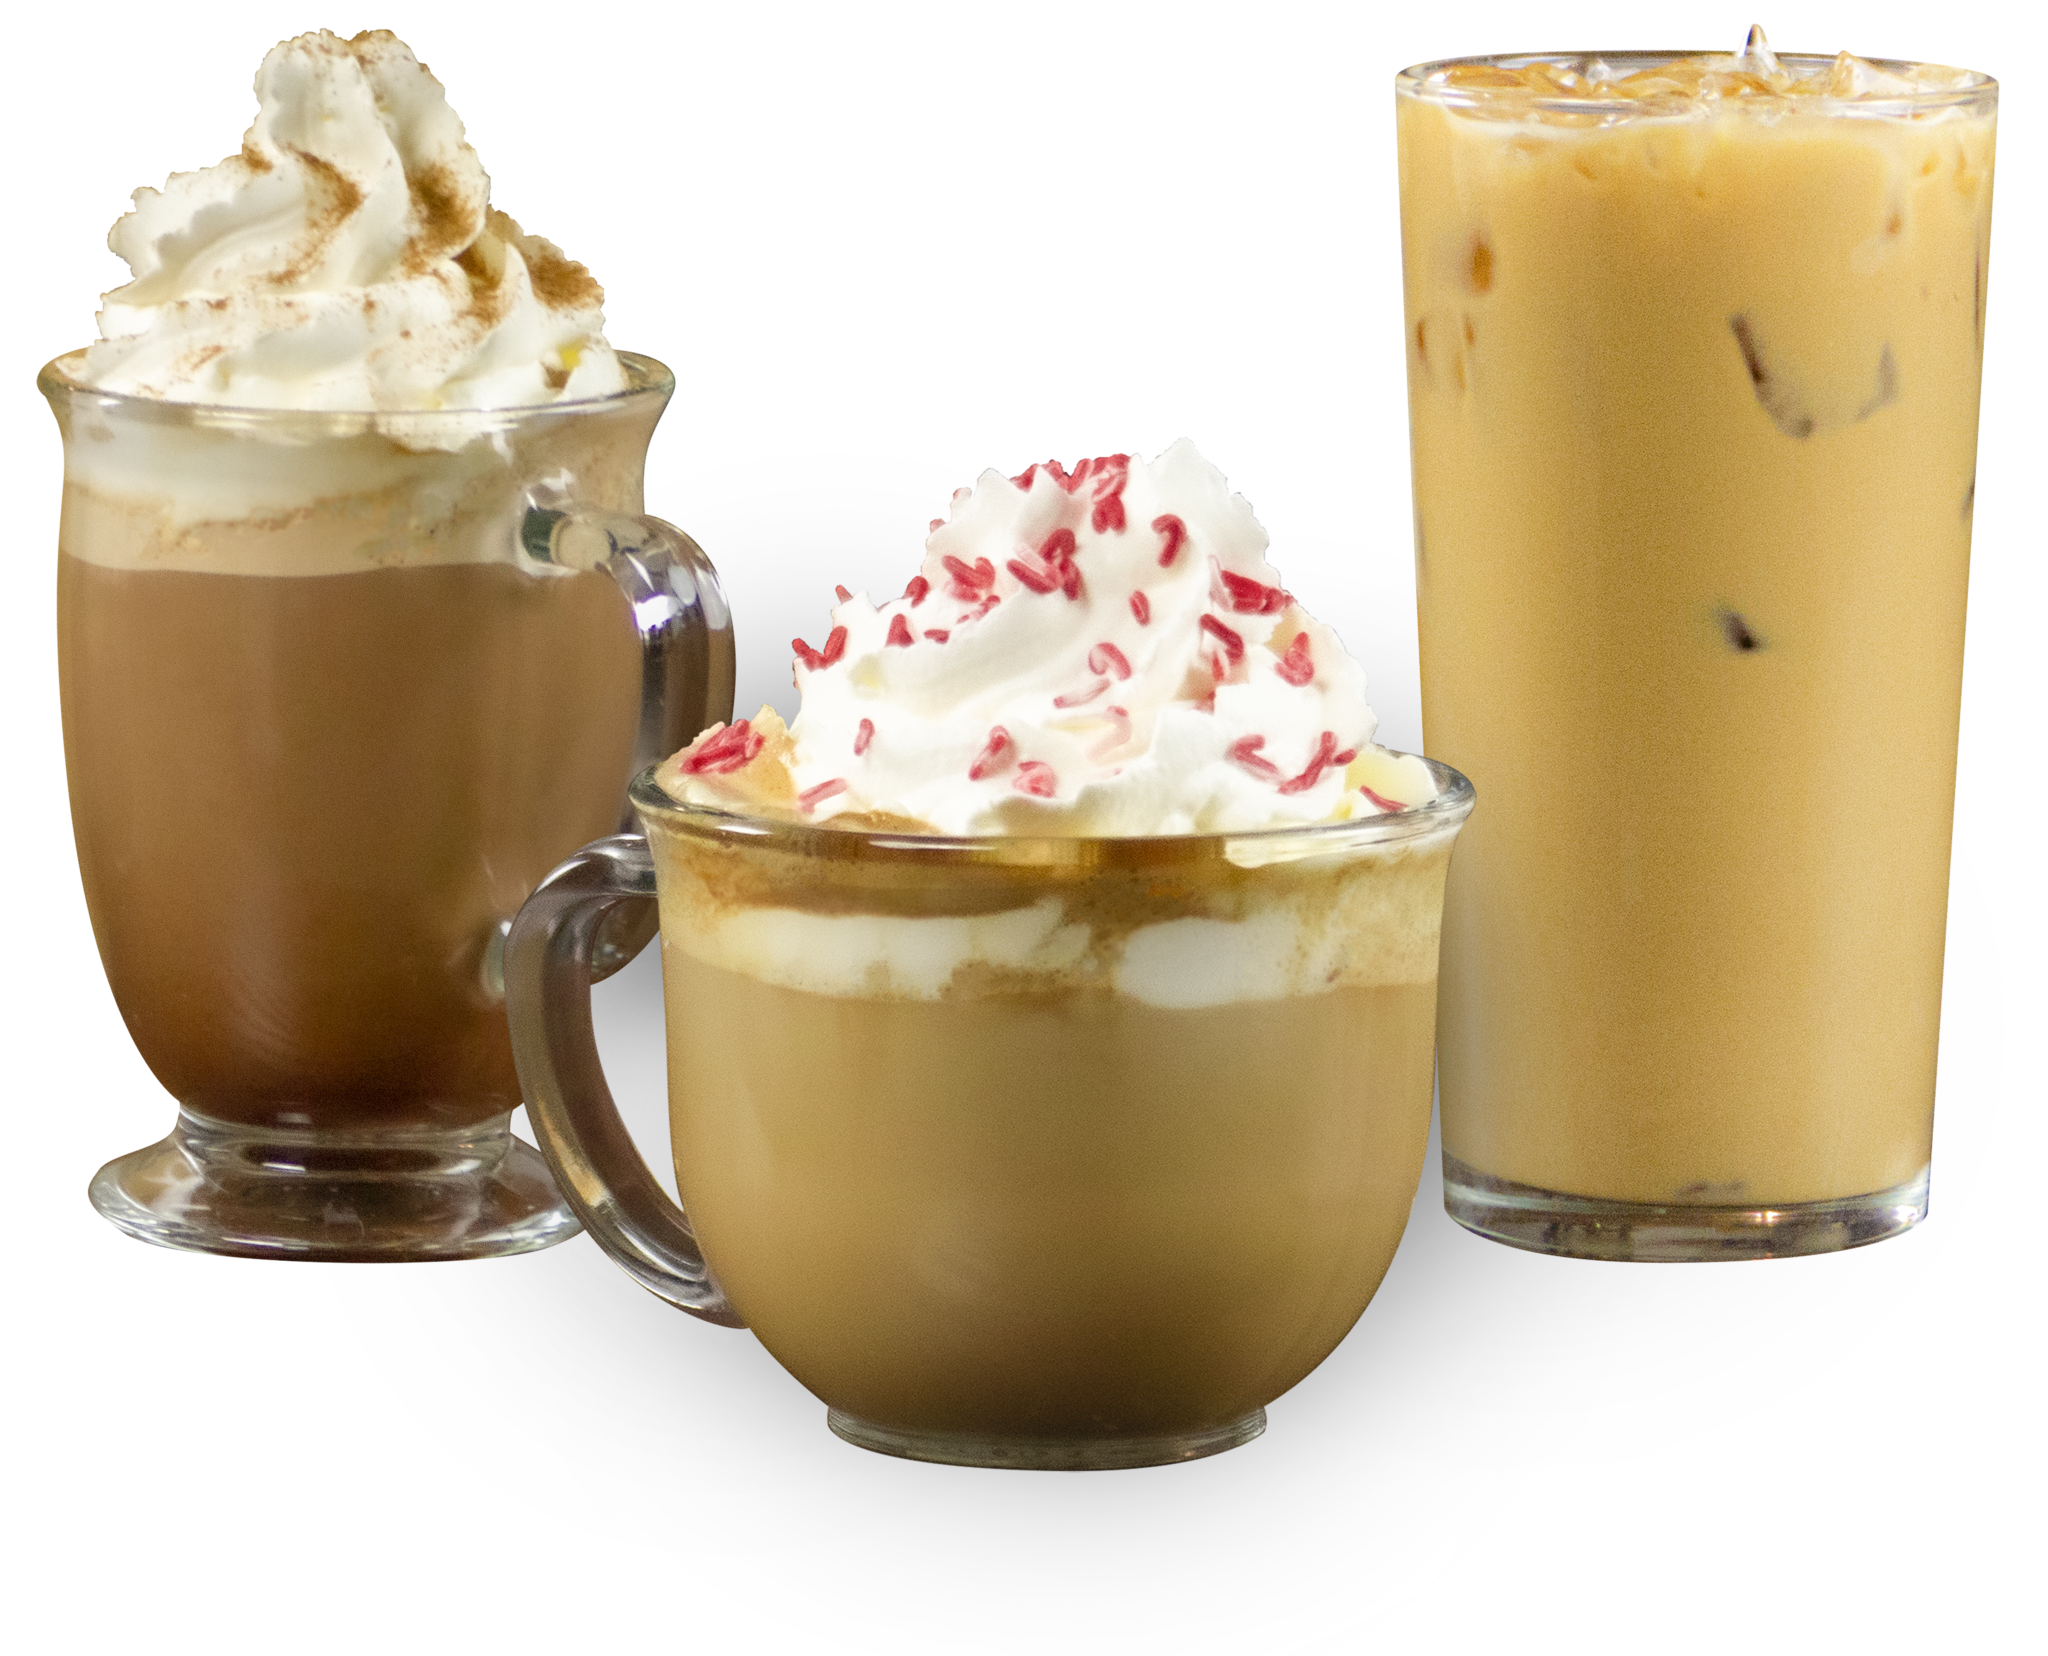 Photo of our 3 holiday drinks: Gingerbread dark mocha, candy cane white mocha, and eggnog cold brew.